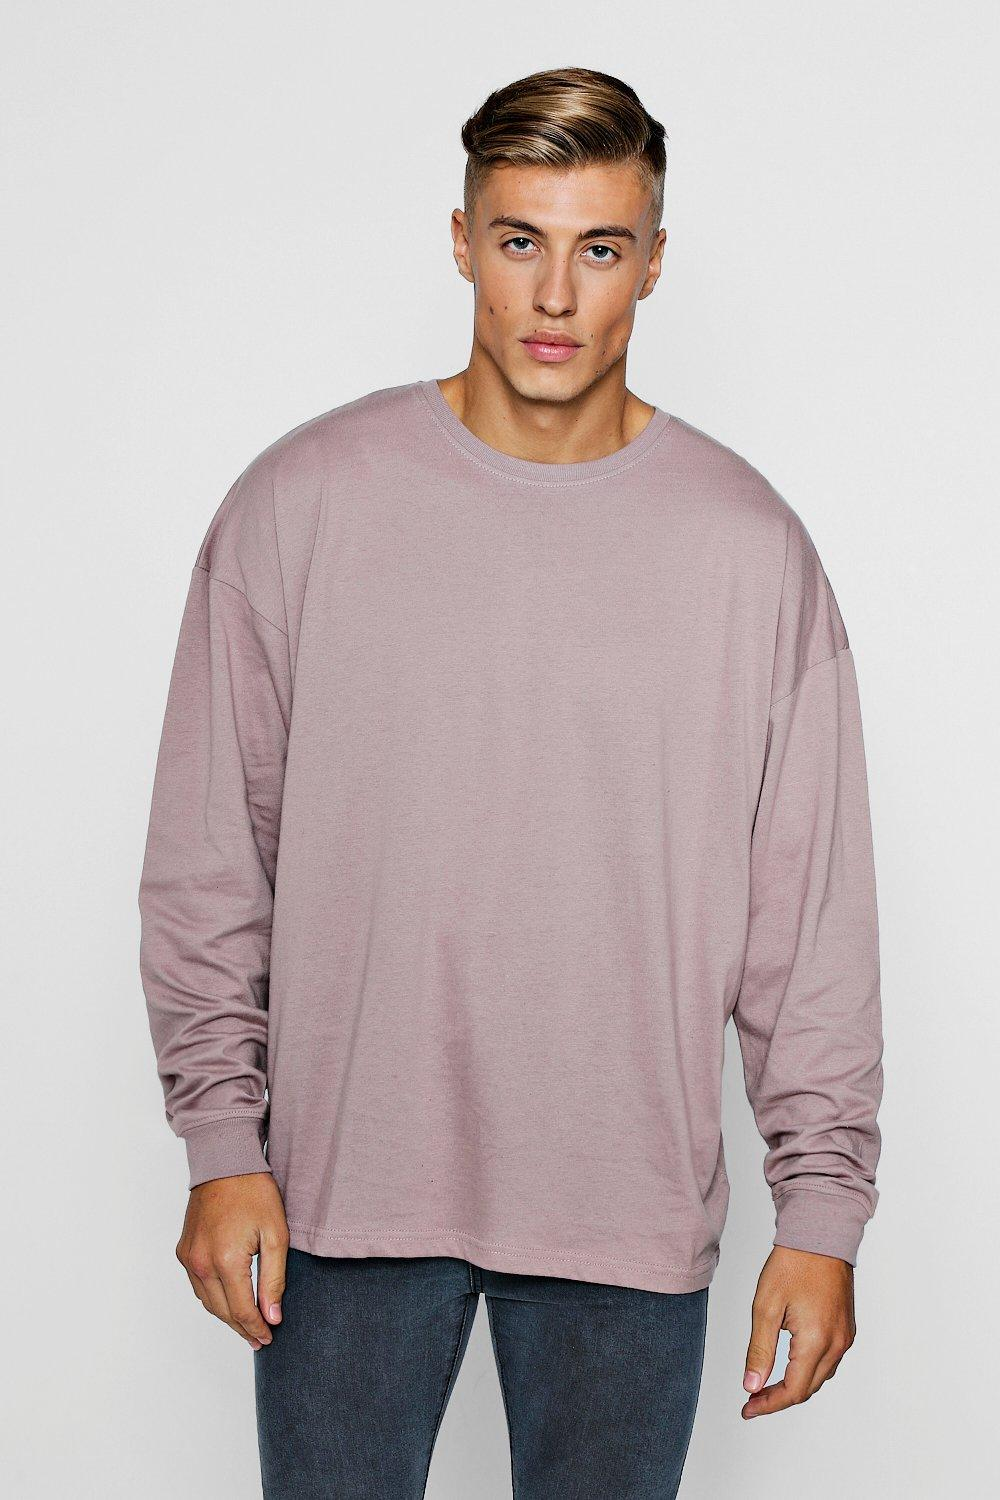 ba8189f39 Mens Bark Oversized Long Sleeve T-Shirt. Hover to zoom